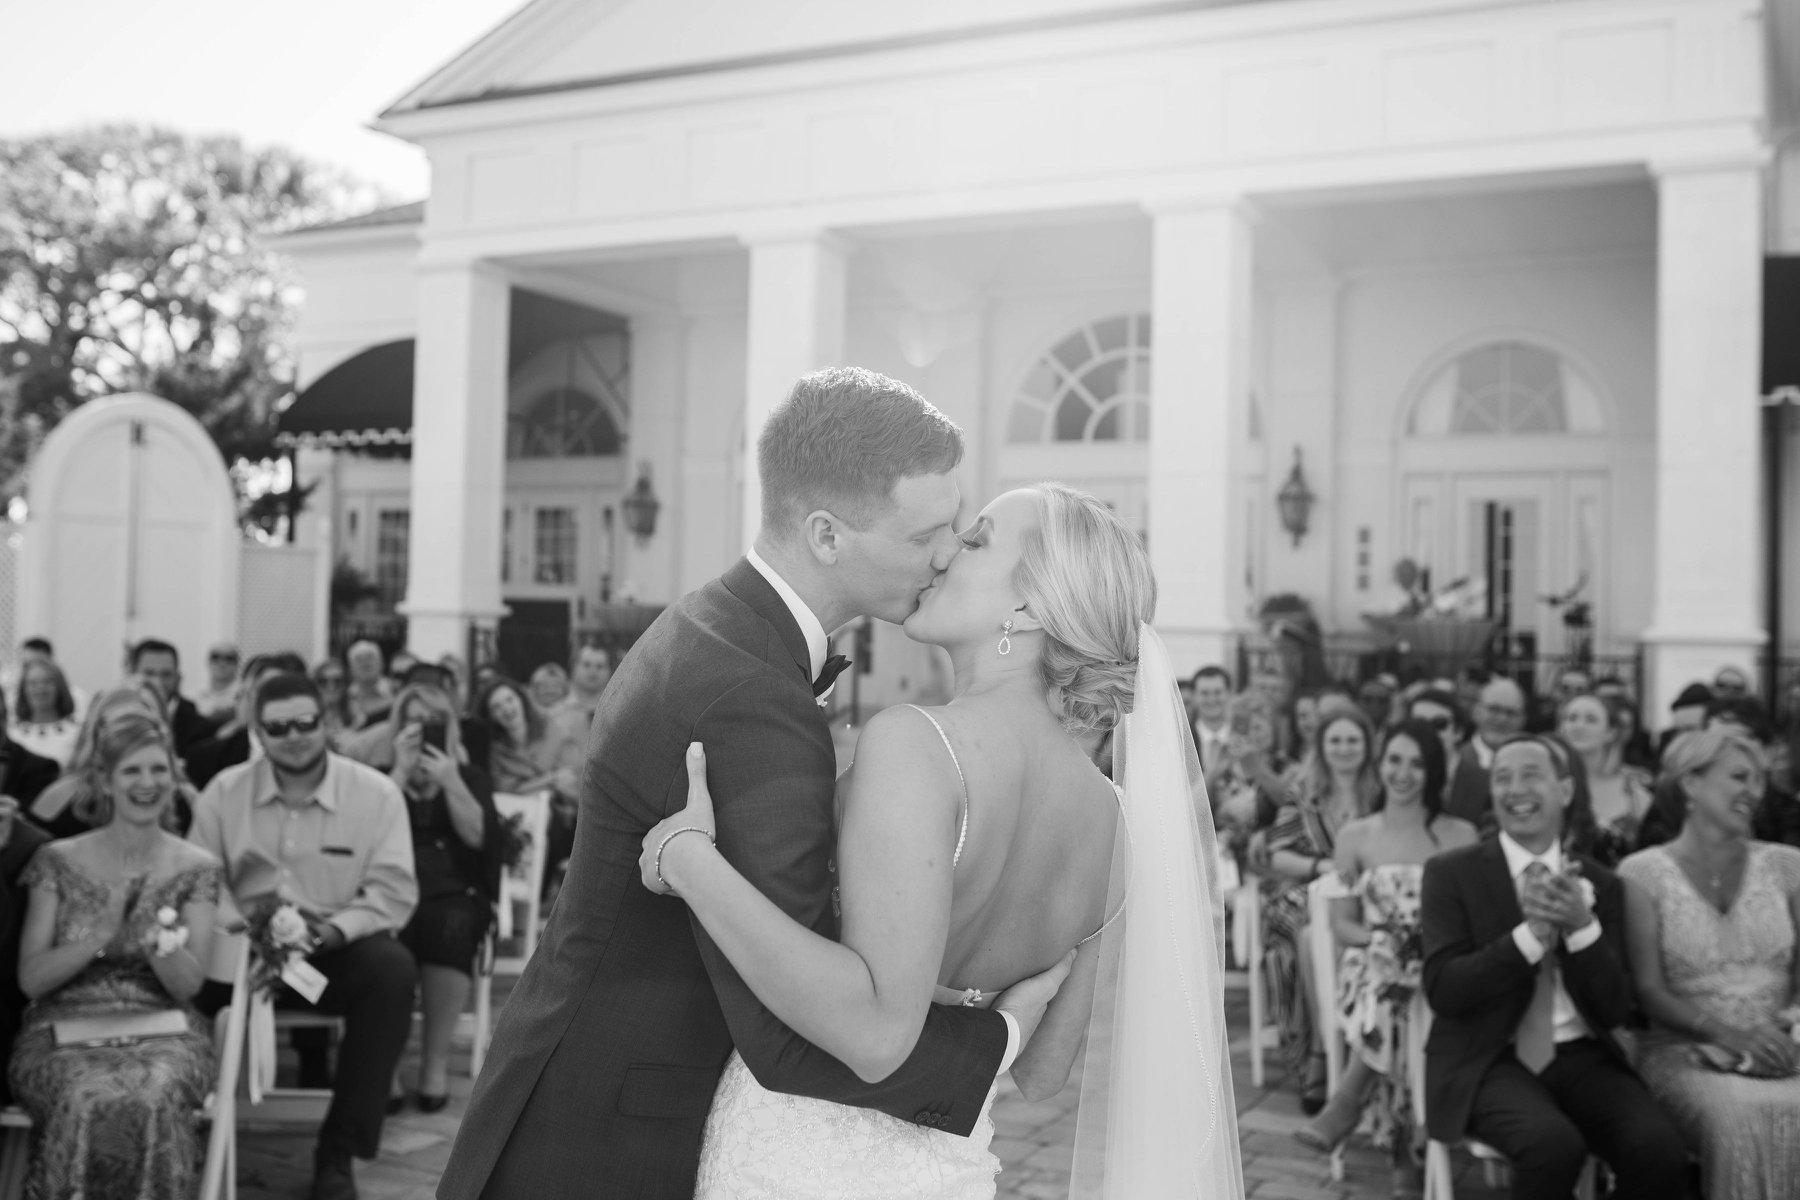 black and white photo of a newlywed couple kissing at the end of their ceremony with a clapping crowd seated in the background